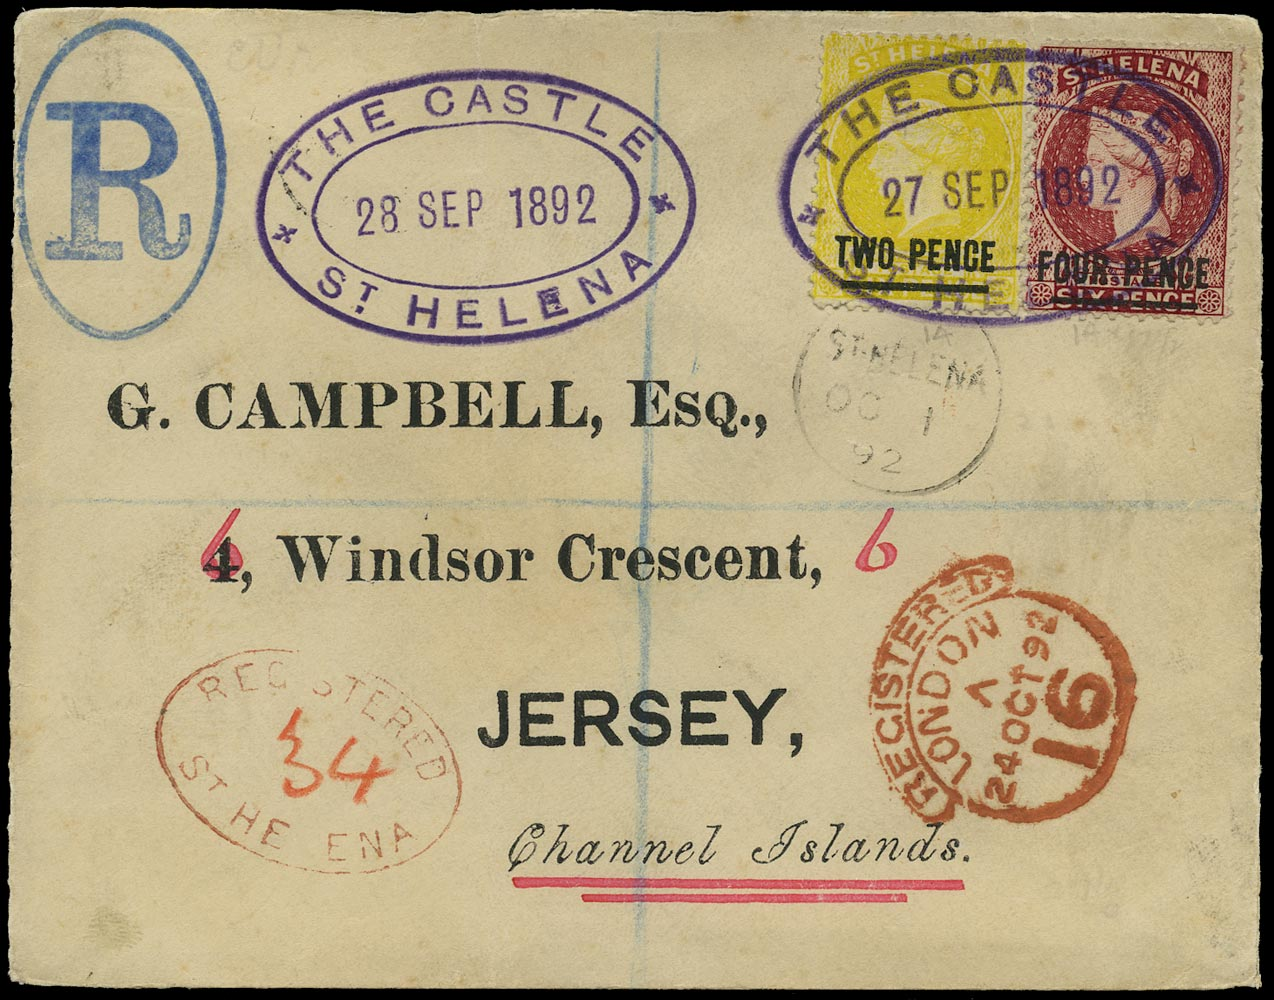 ST HELENA 1892  SG24, 39 Cover registered from The Castle to Jersey